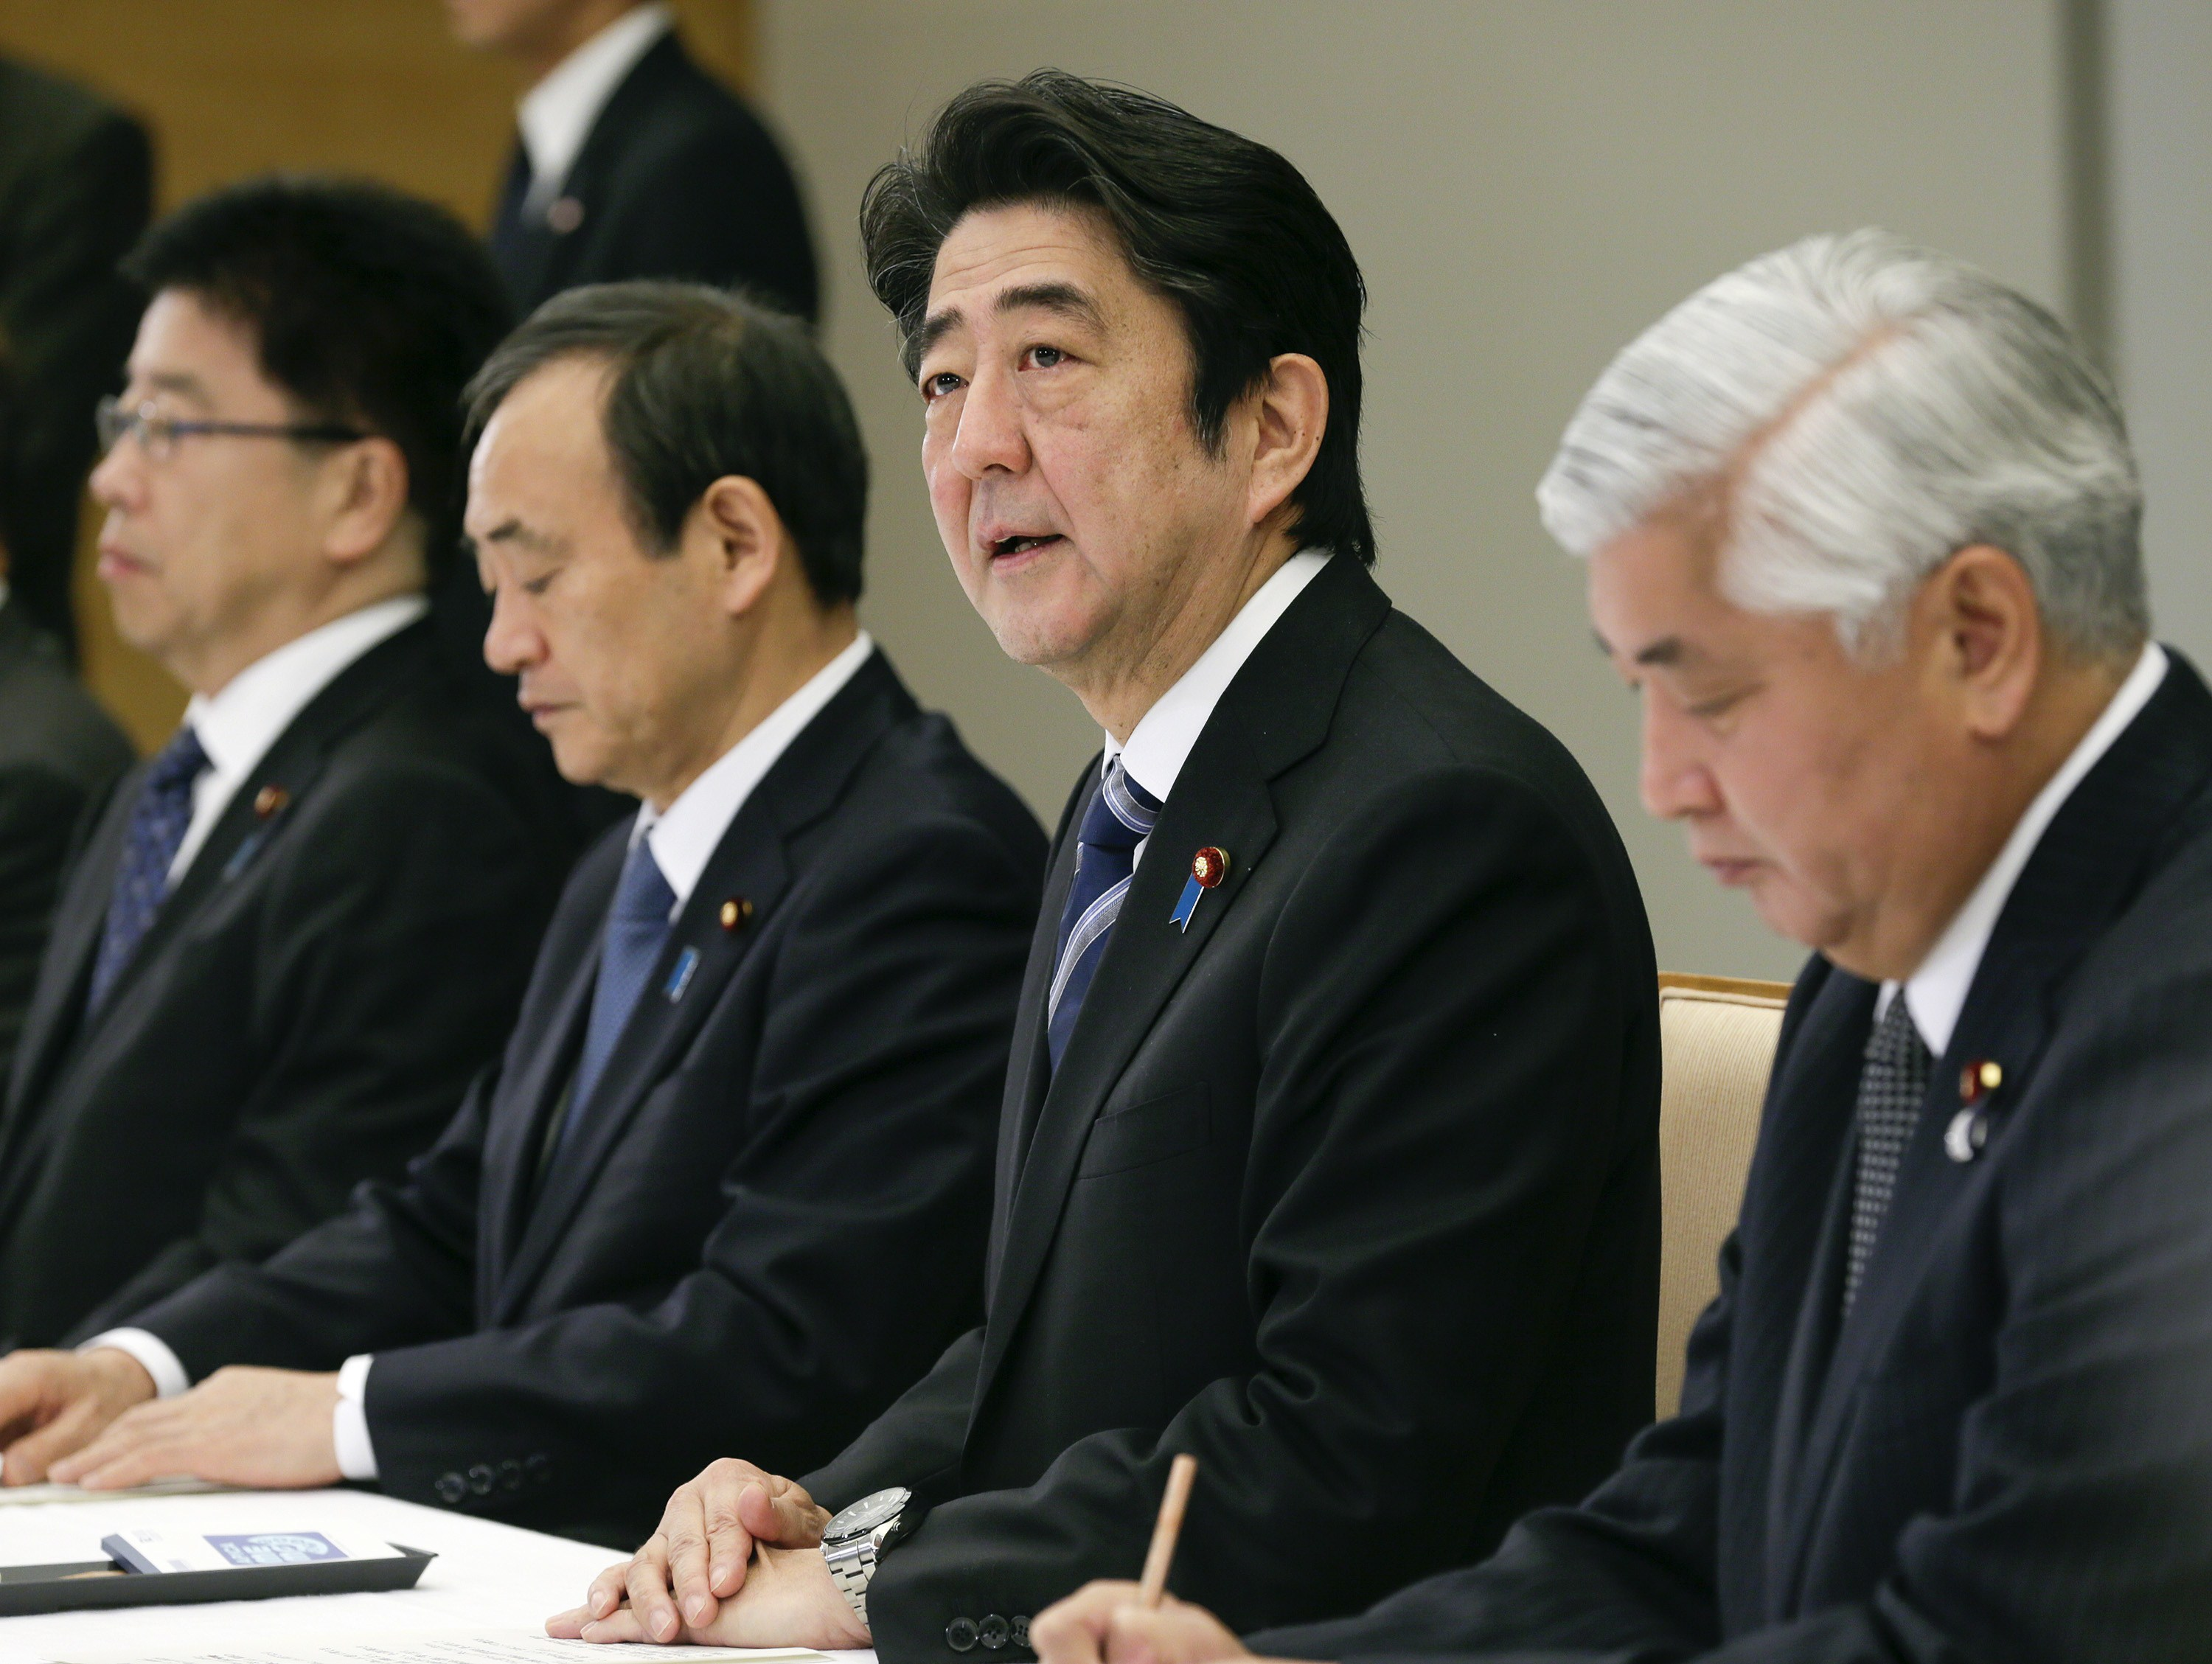 Japanese Prime Minister Shinzo Abe talks during a ministerial meeting on an online video purportedly showing a Japanese hostage being killed by the Islamic State at the prime minister's official residence in Tokyo on Feb. 1, 2015.